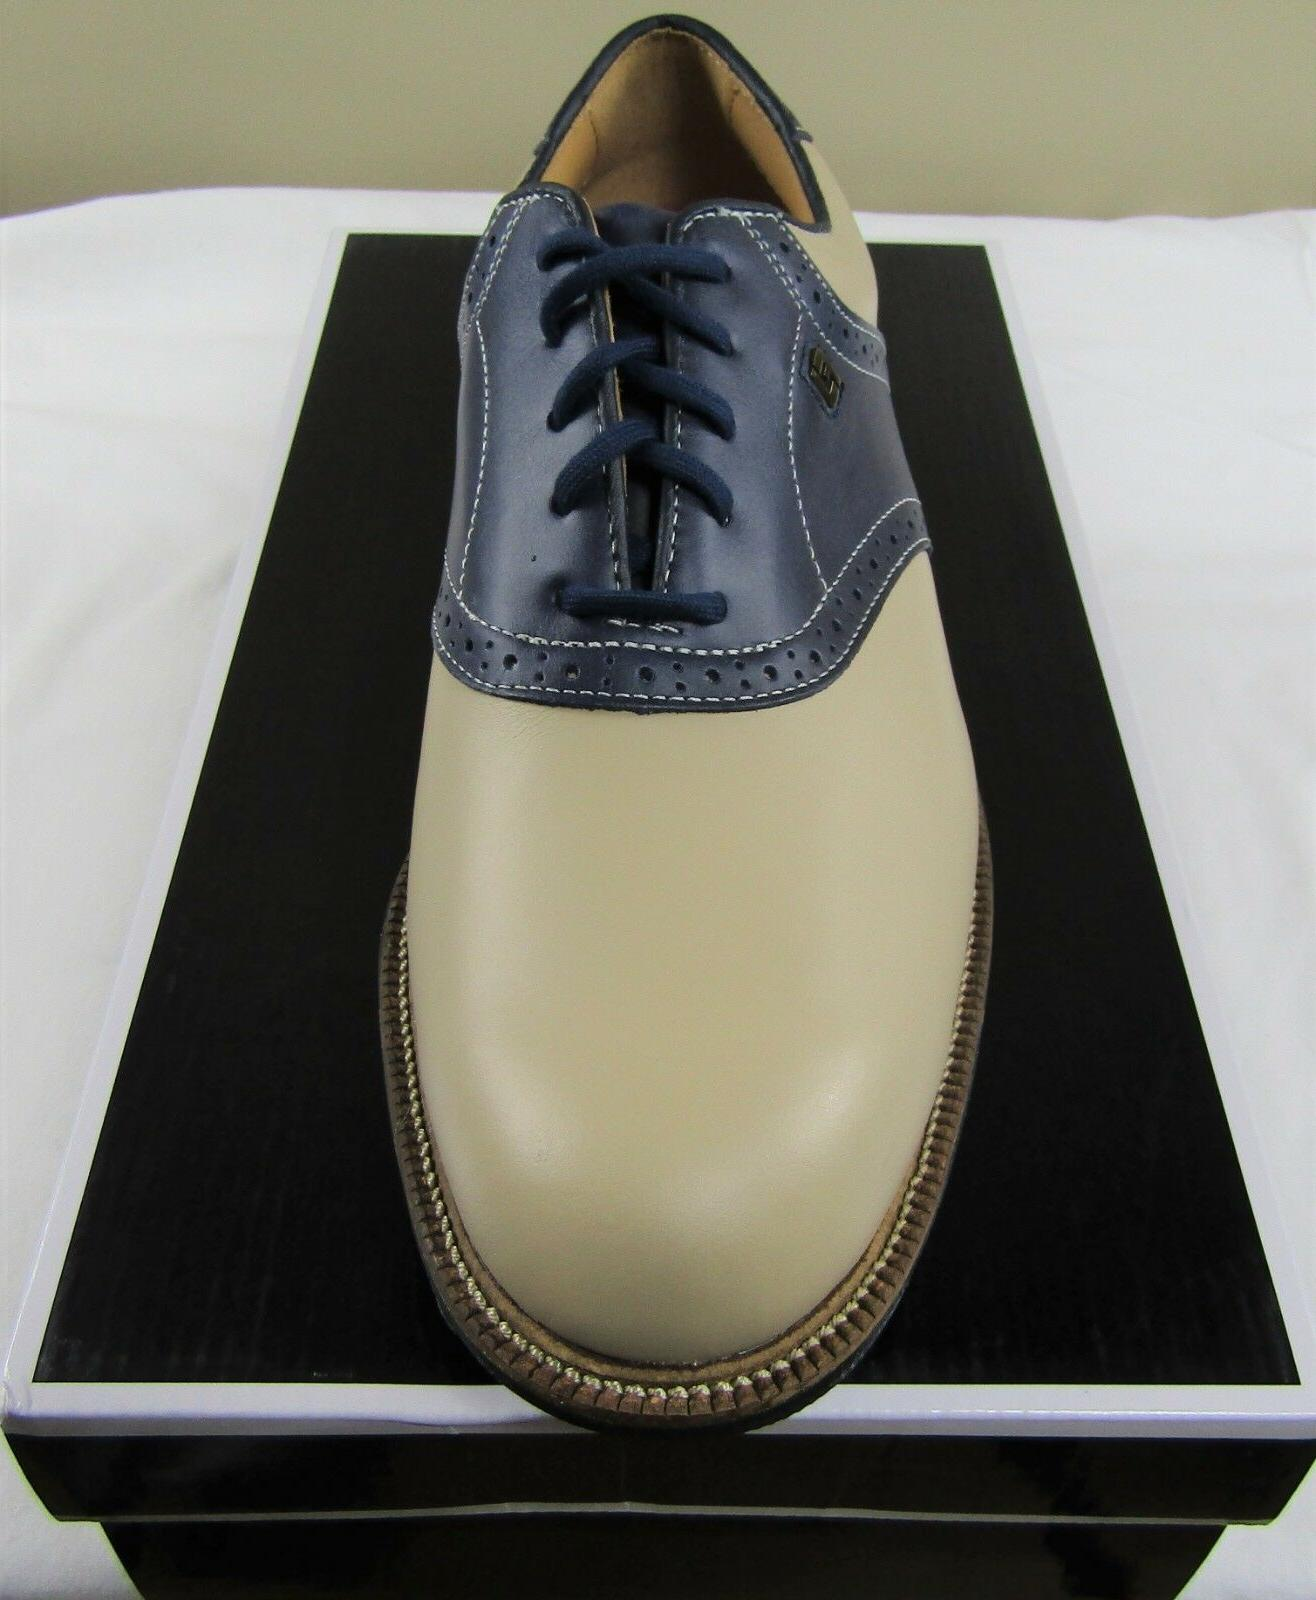 New in Box Club Shoes, Bone 57004